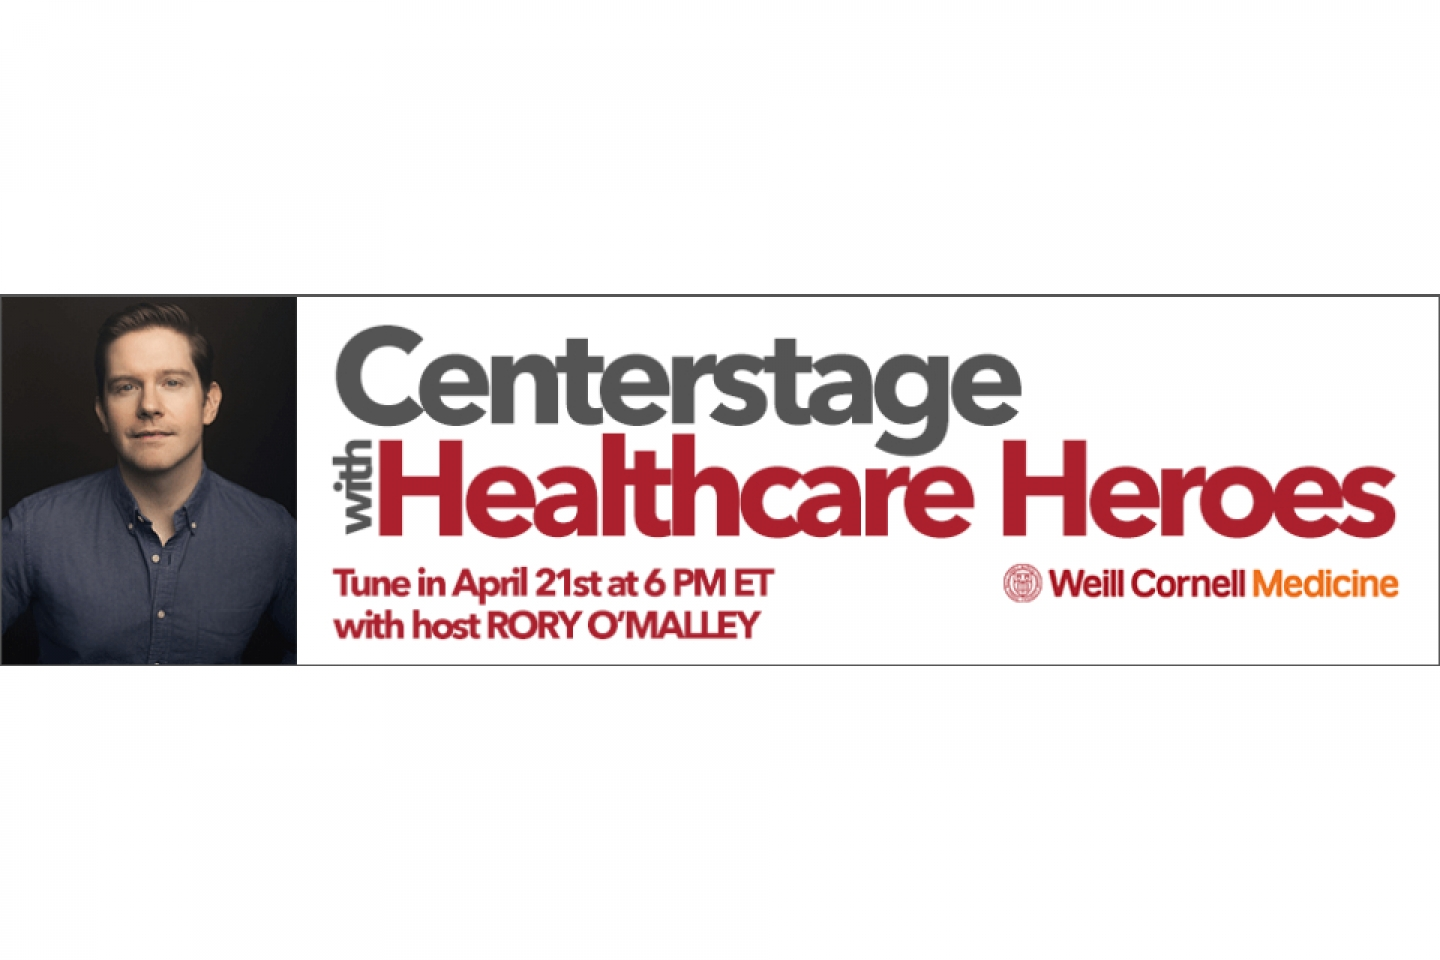 Centerstage with Healthcare Heroes with Rory O'Malley